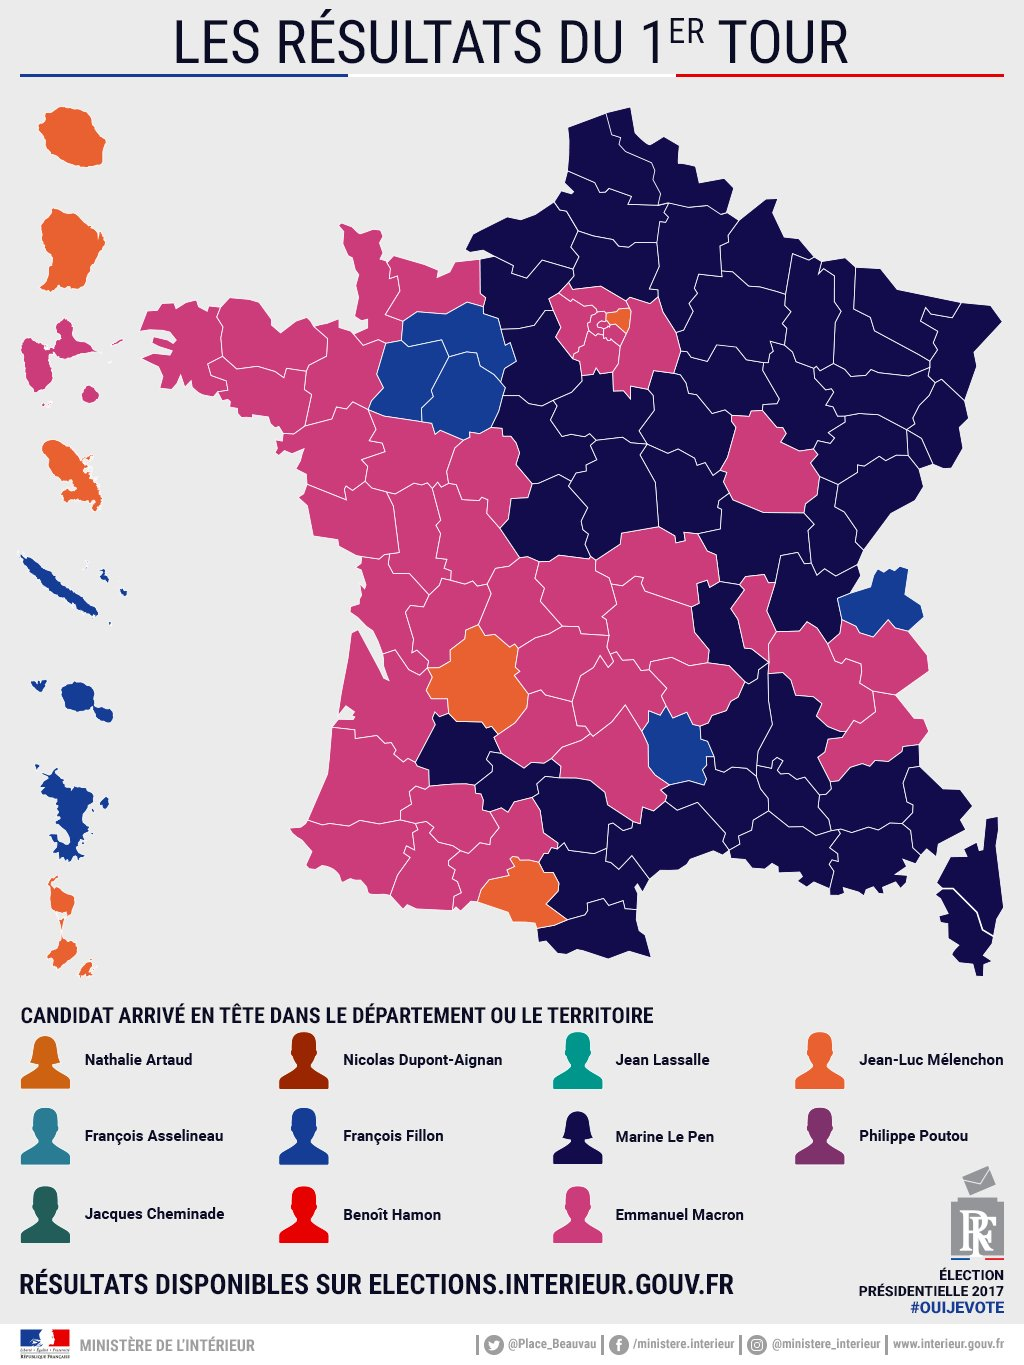 the Distribution of candidates-leaders of departments of France